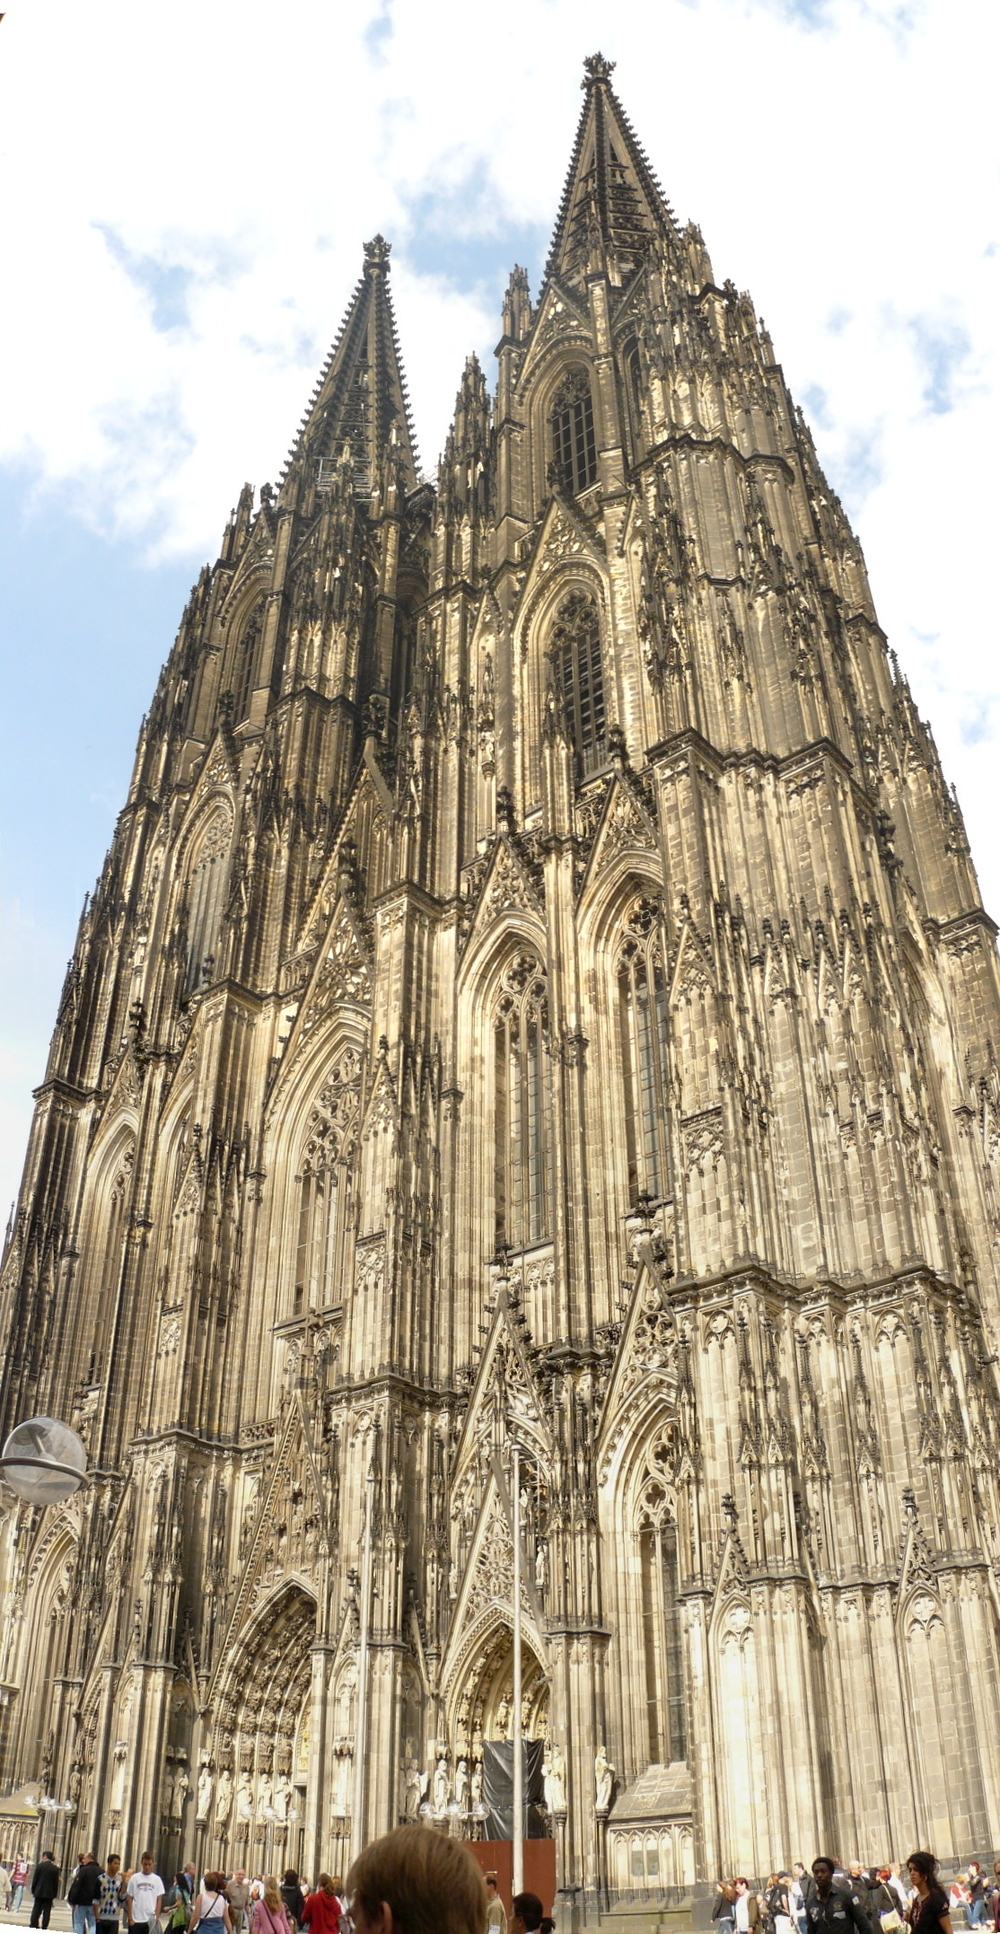 One of the highlights of the tour was performing in Cologne Cathedral.